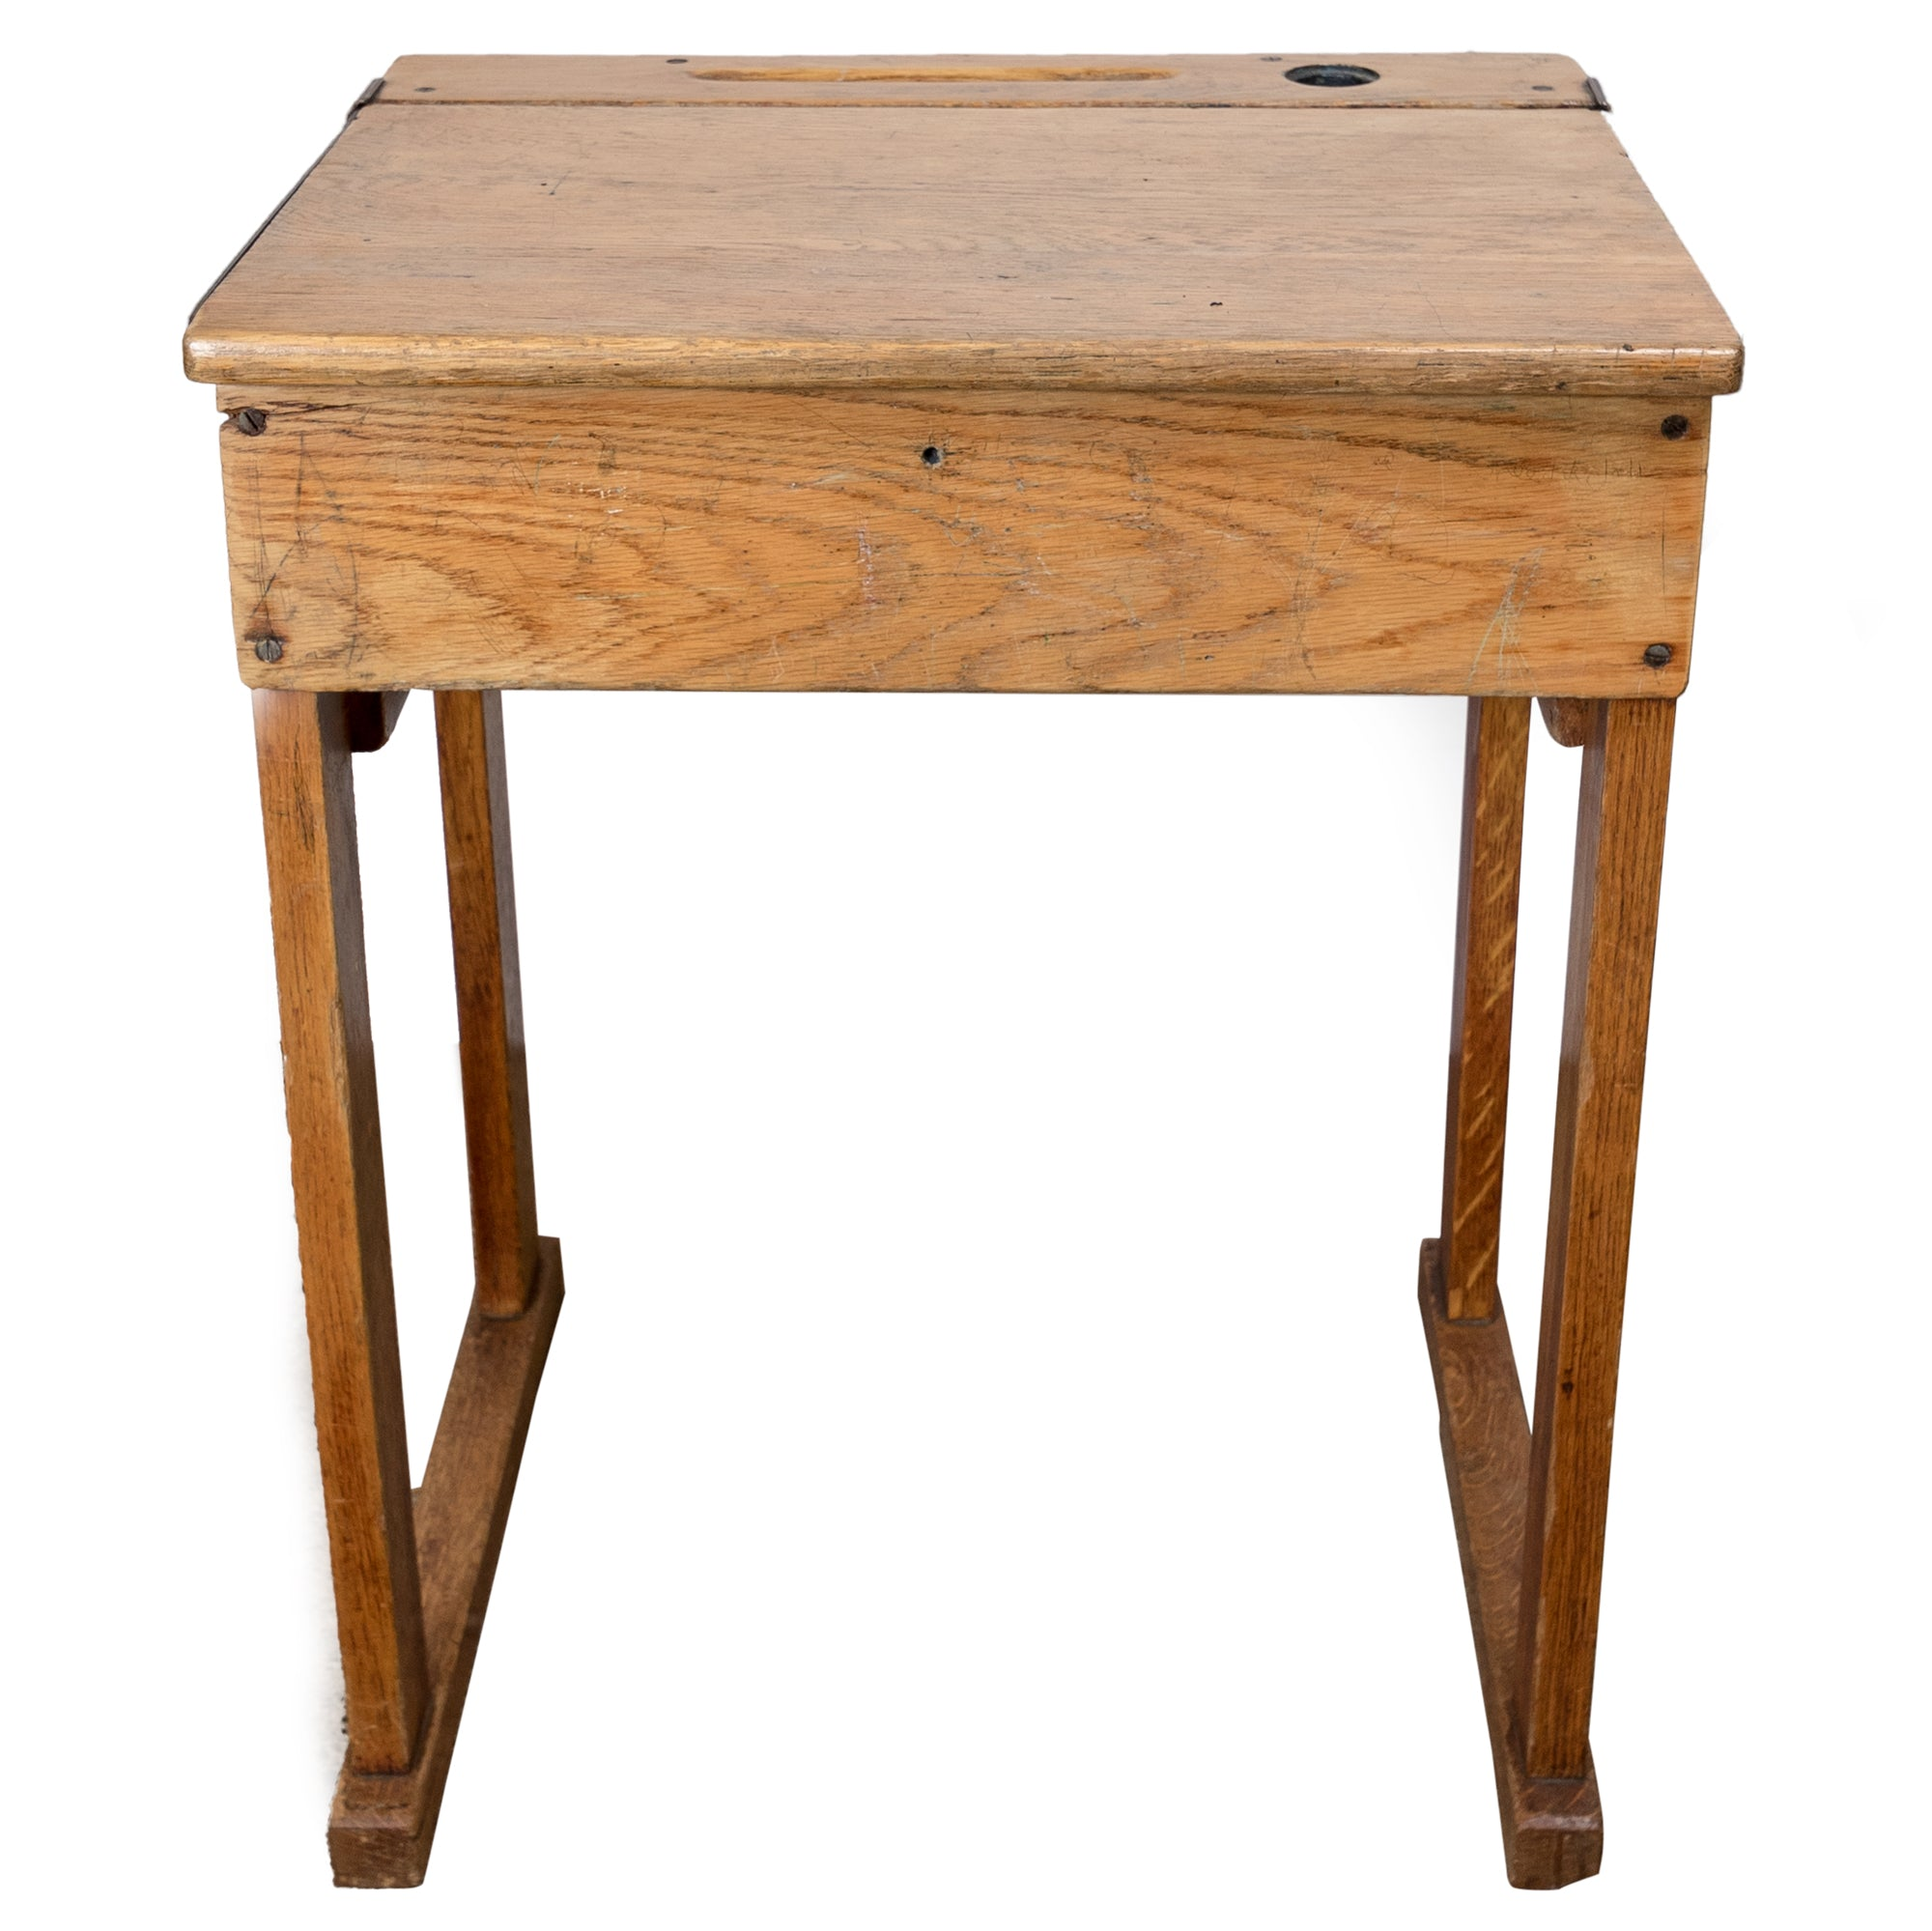 Reclaimed Oak School Desk - architectural-forum